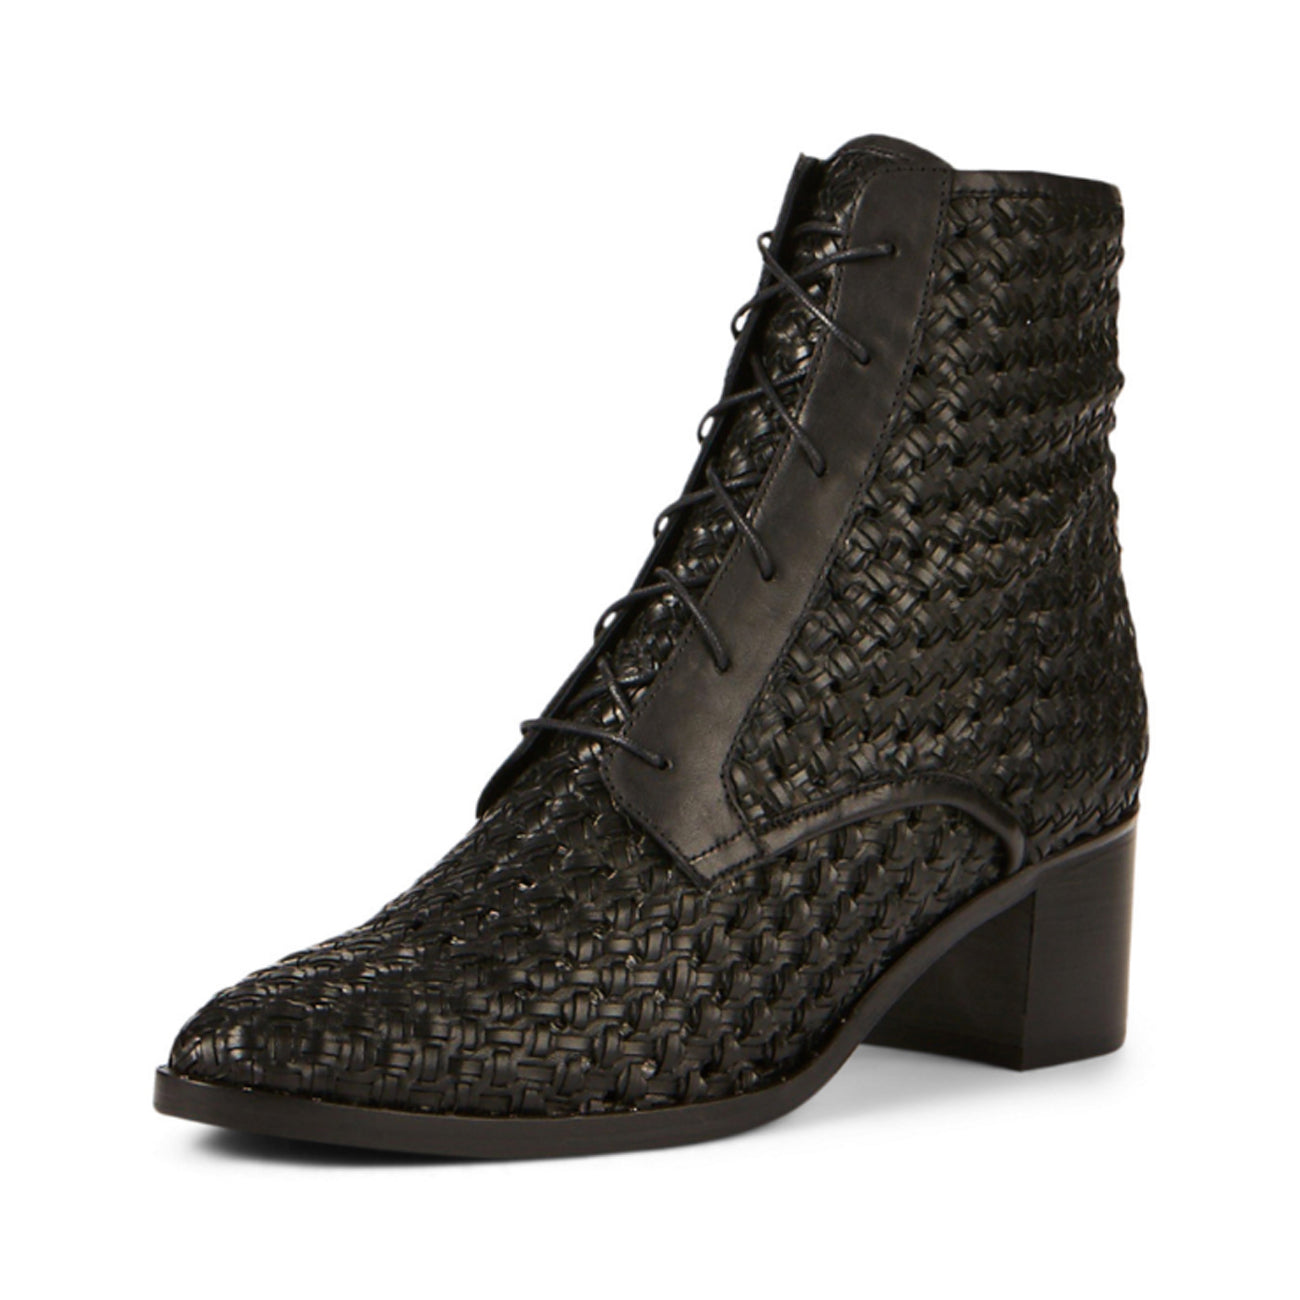 Freda Salvador Ace Lace Up Boot in Black Woven